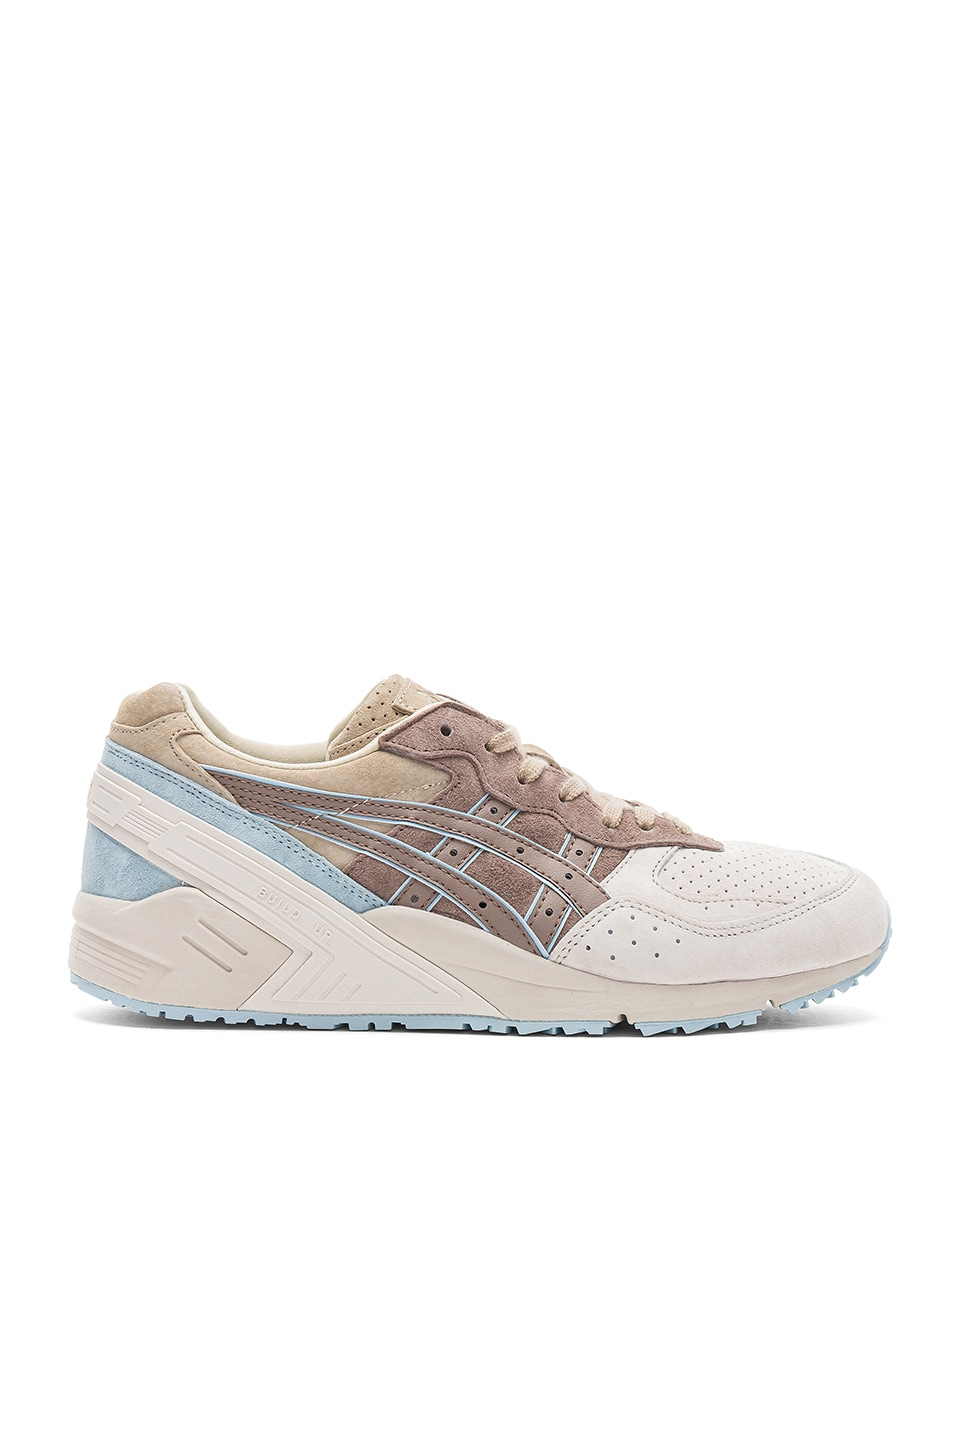 Asics Platinum Gel Sight in Taupe Grey & Taupe Grey